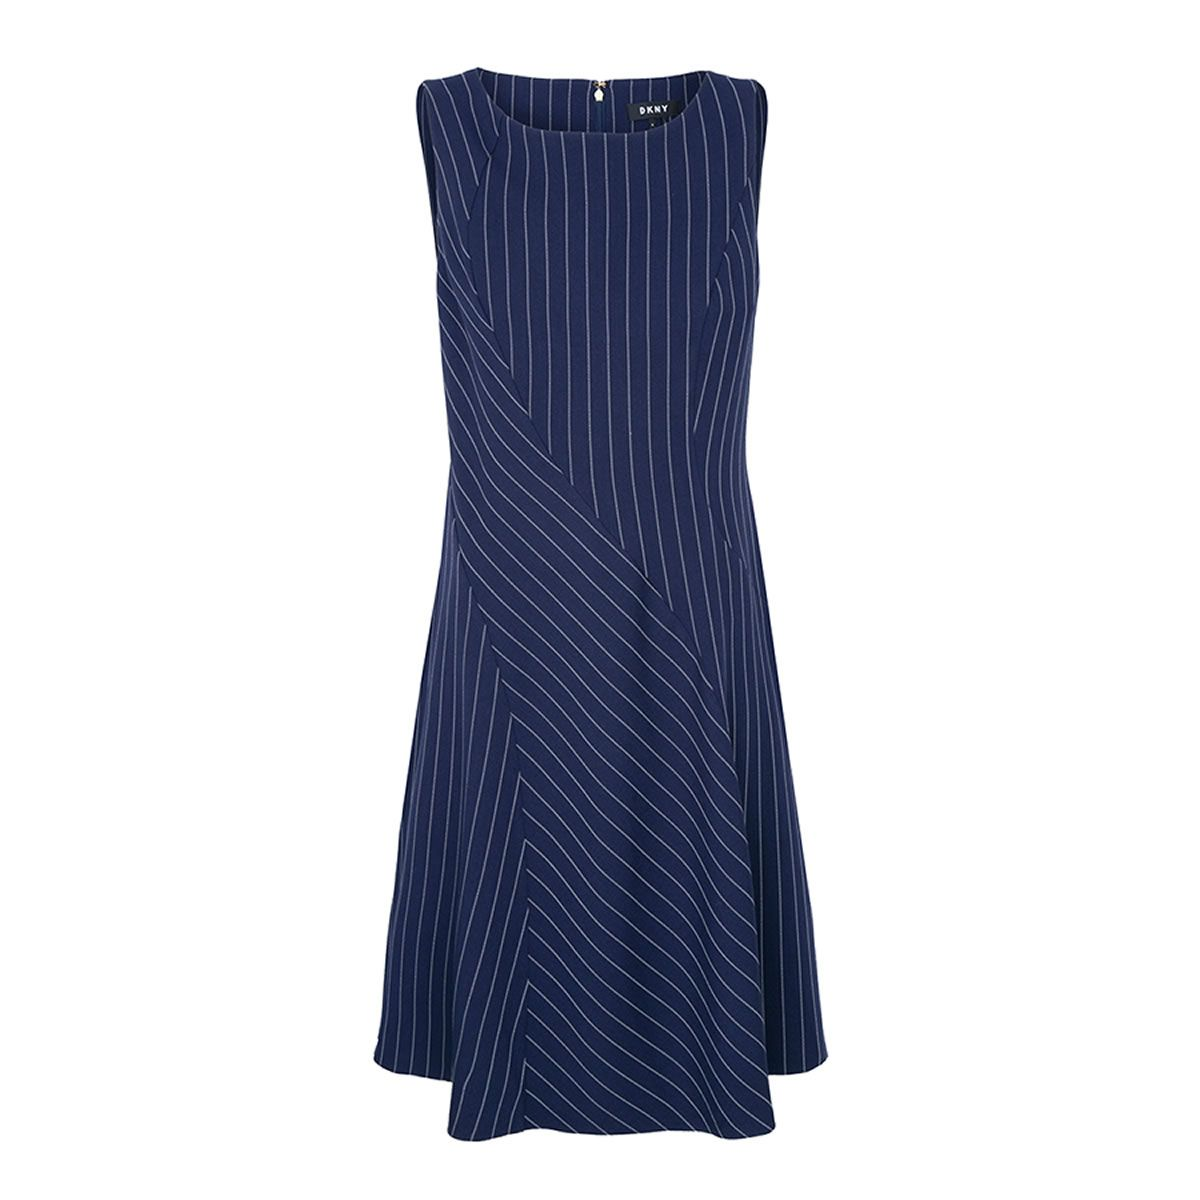 7a58f4c1d964 DKNY Dresses for Women - Macy's